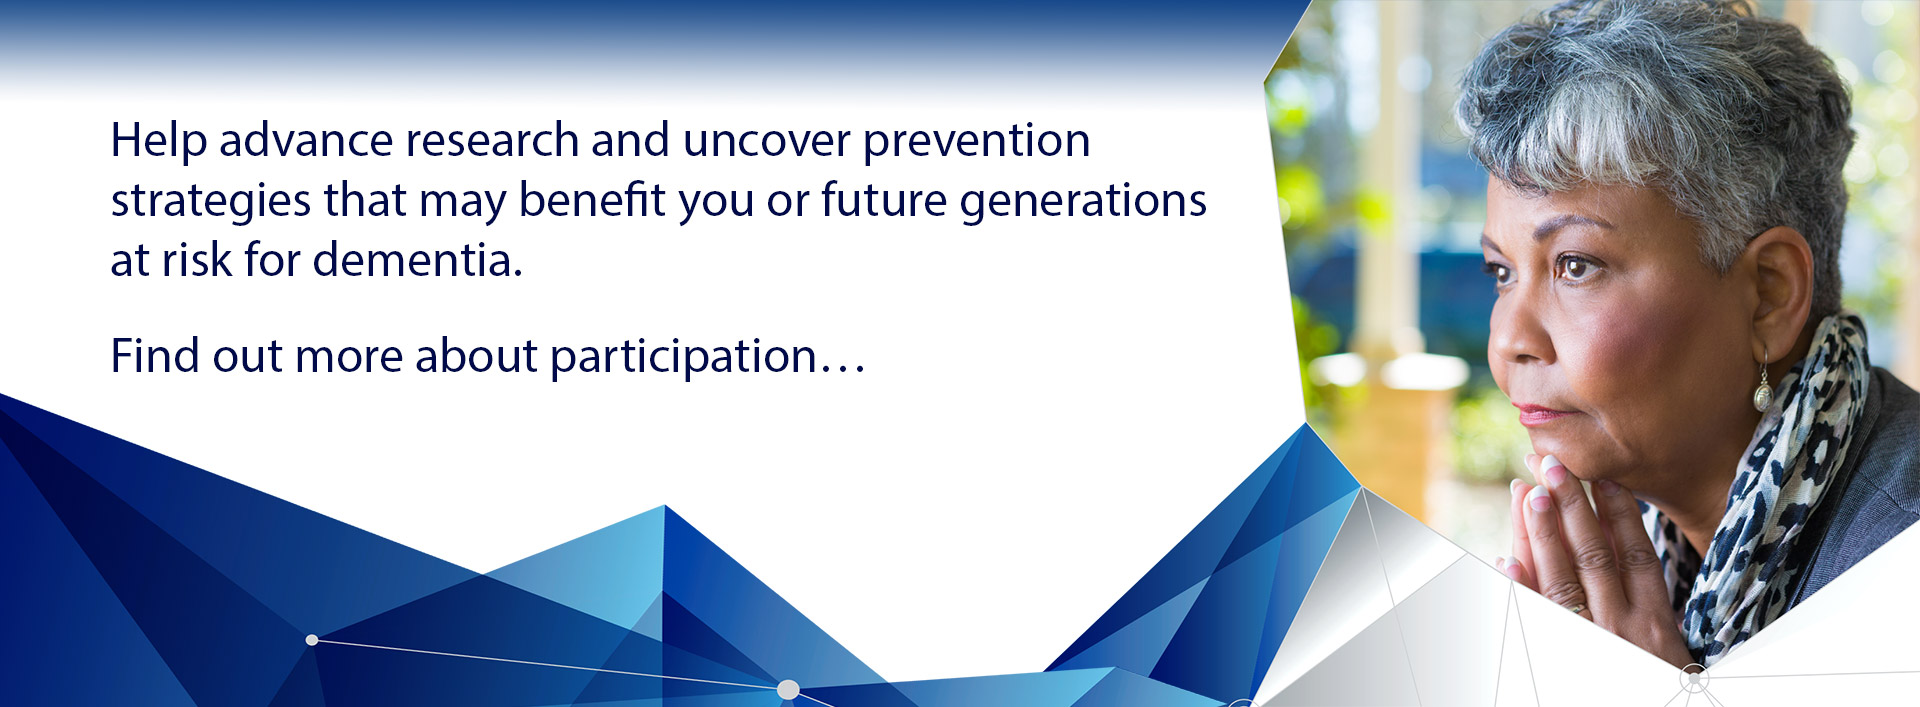 Help advance research and uncover prevention strategies that may benefit you or future generations at risk for dementia.